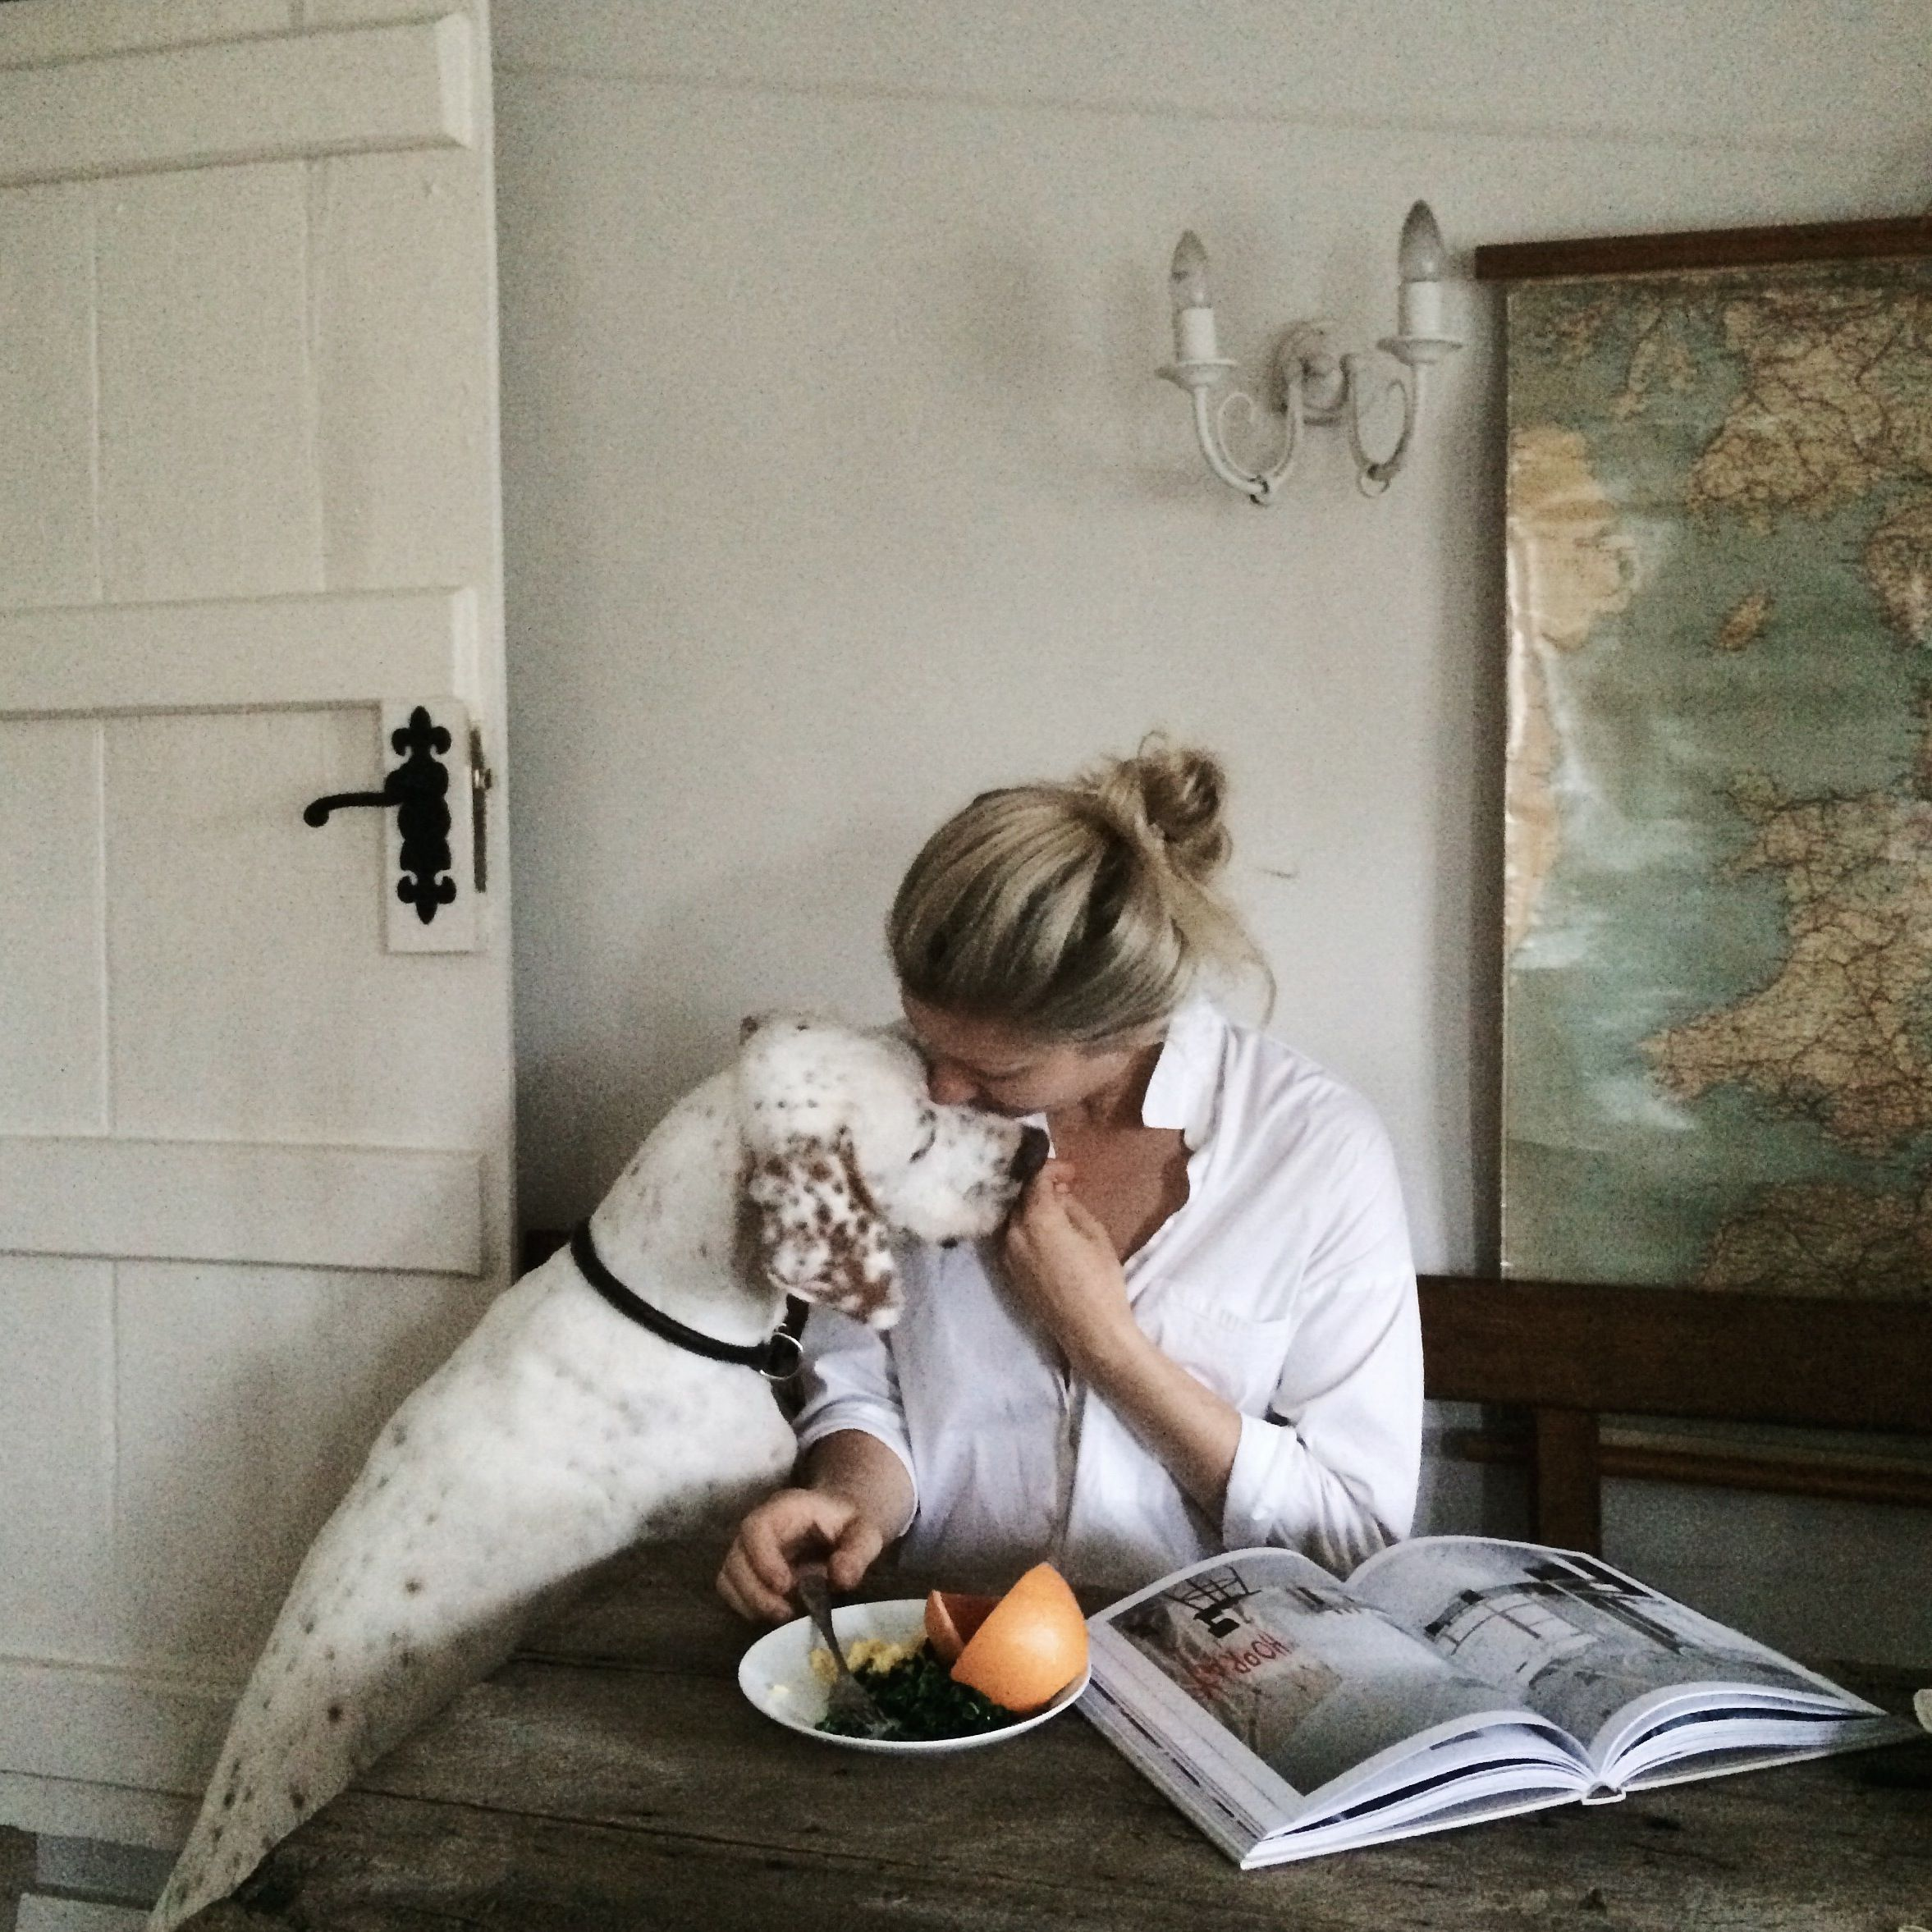 Sunday Suppers Cookbook A Gathering Tour Host Marte Marie Forsberg City Dorset Uk Breakfast In Bed I Love Dogs Dogs Dog Love